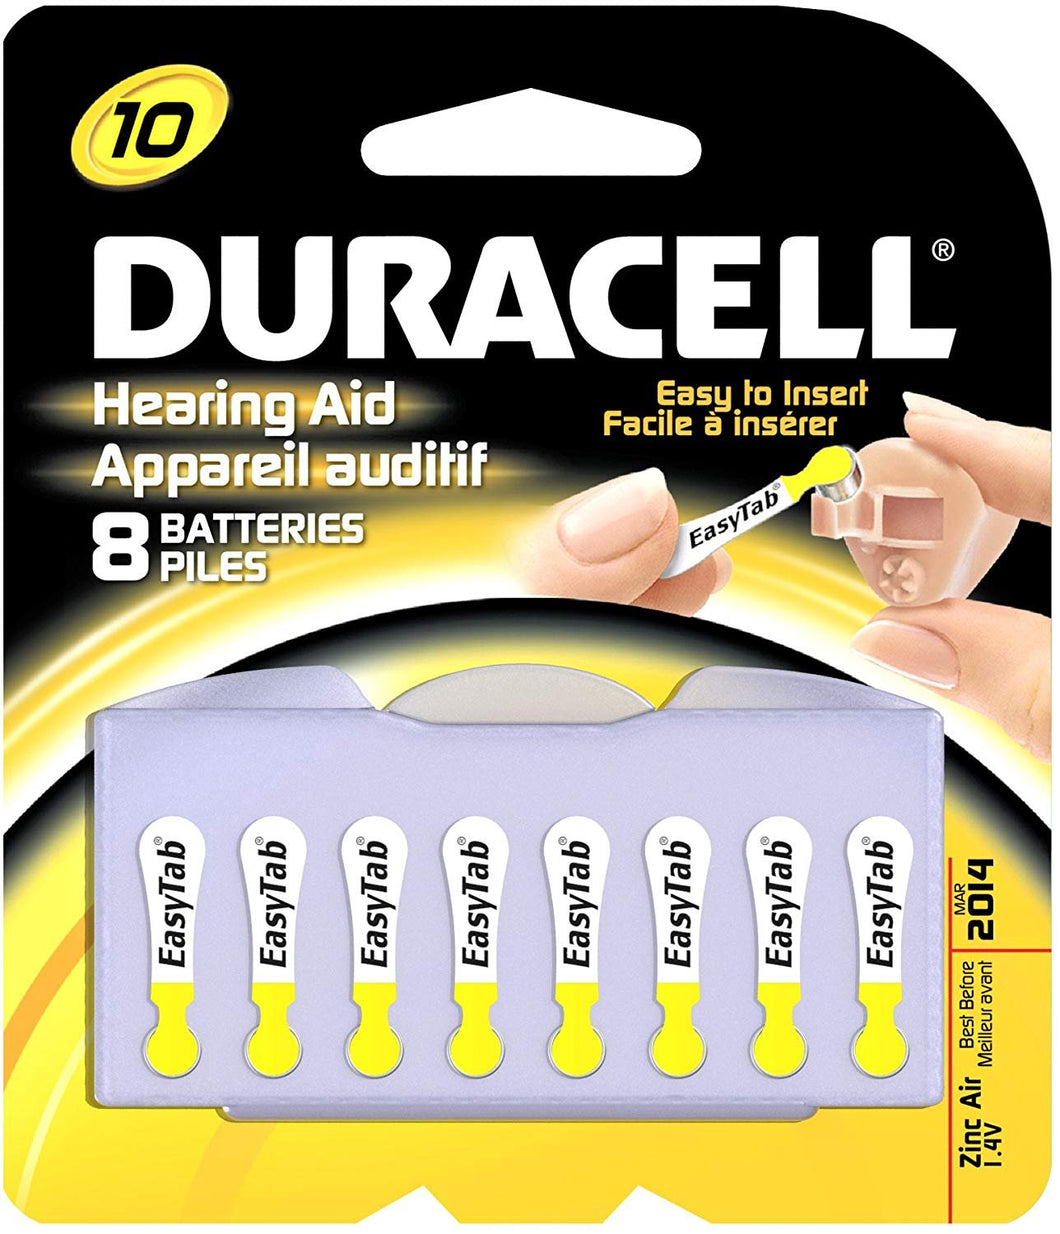 Duracell Hearing Aid 10 Batteries, 8-Count